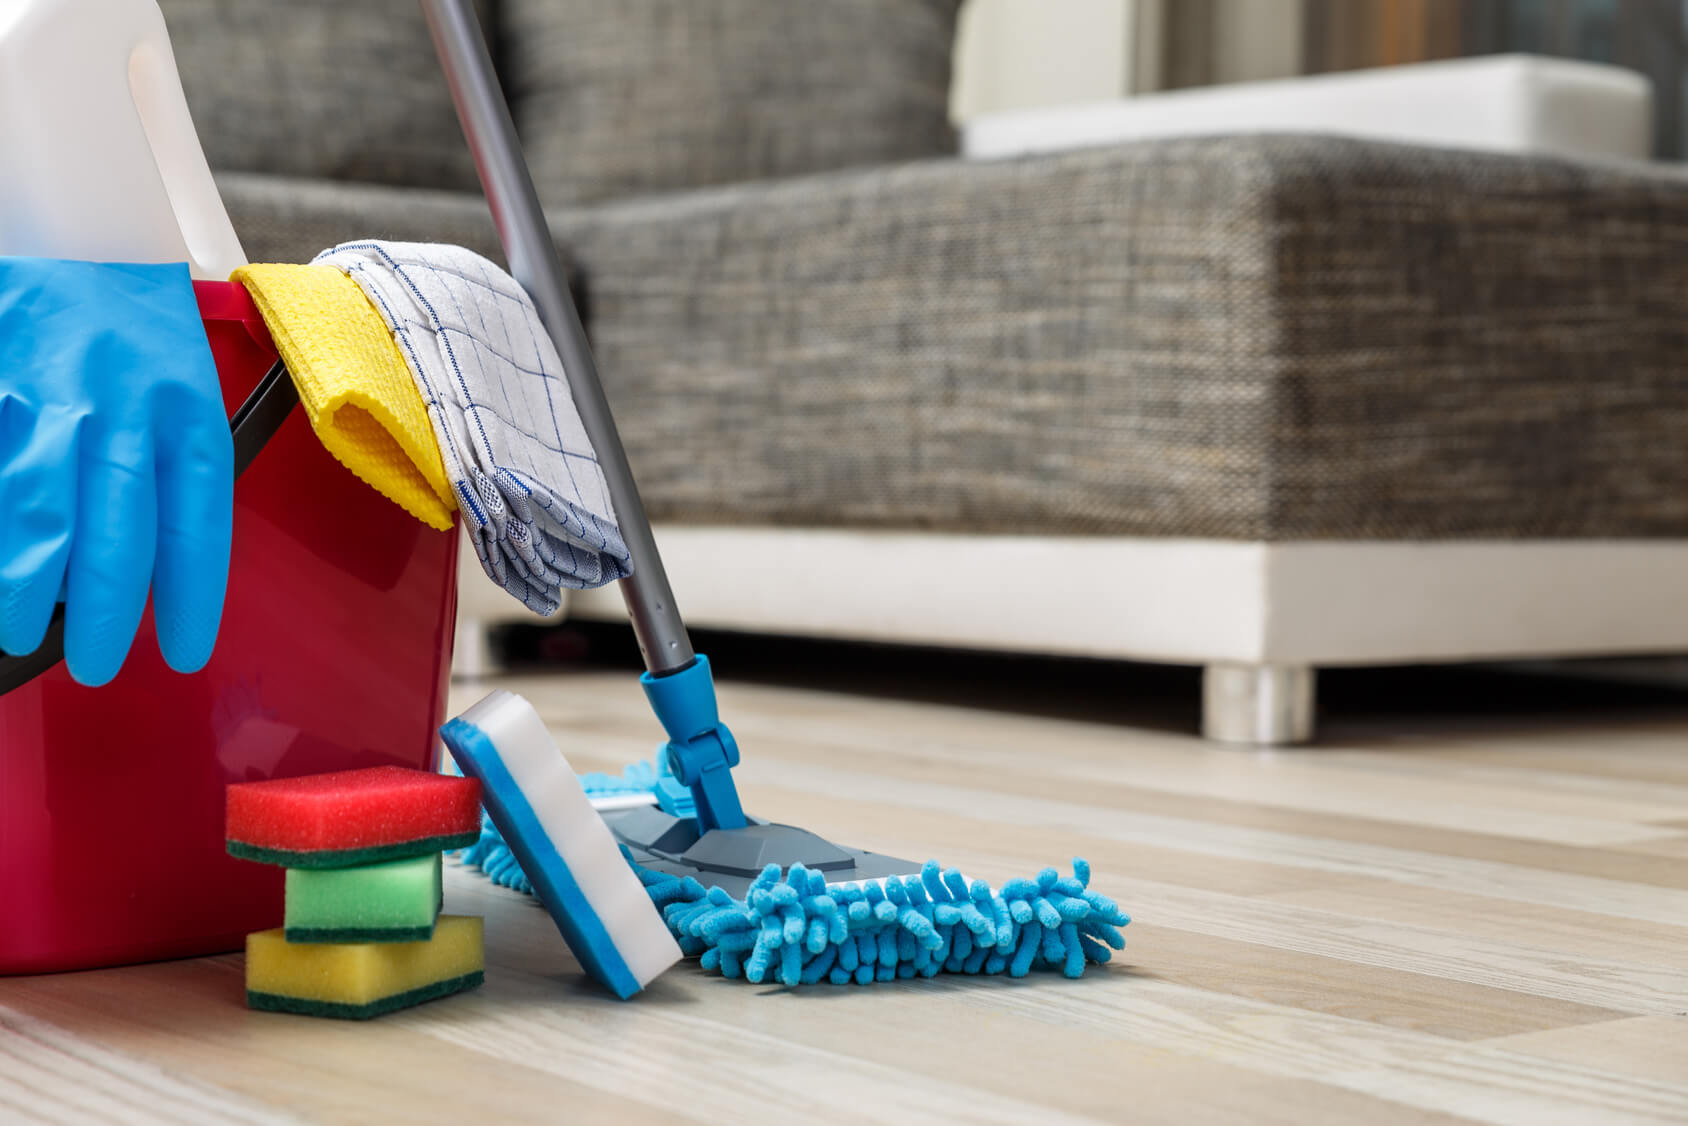 https://steweys.com/wp-content/uploads/2019/02/commercial-cleaning-services.jpg